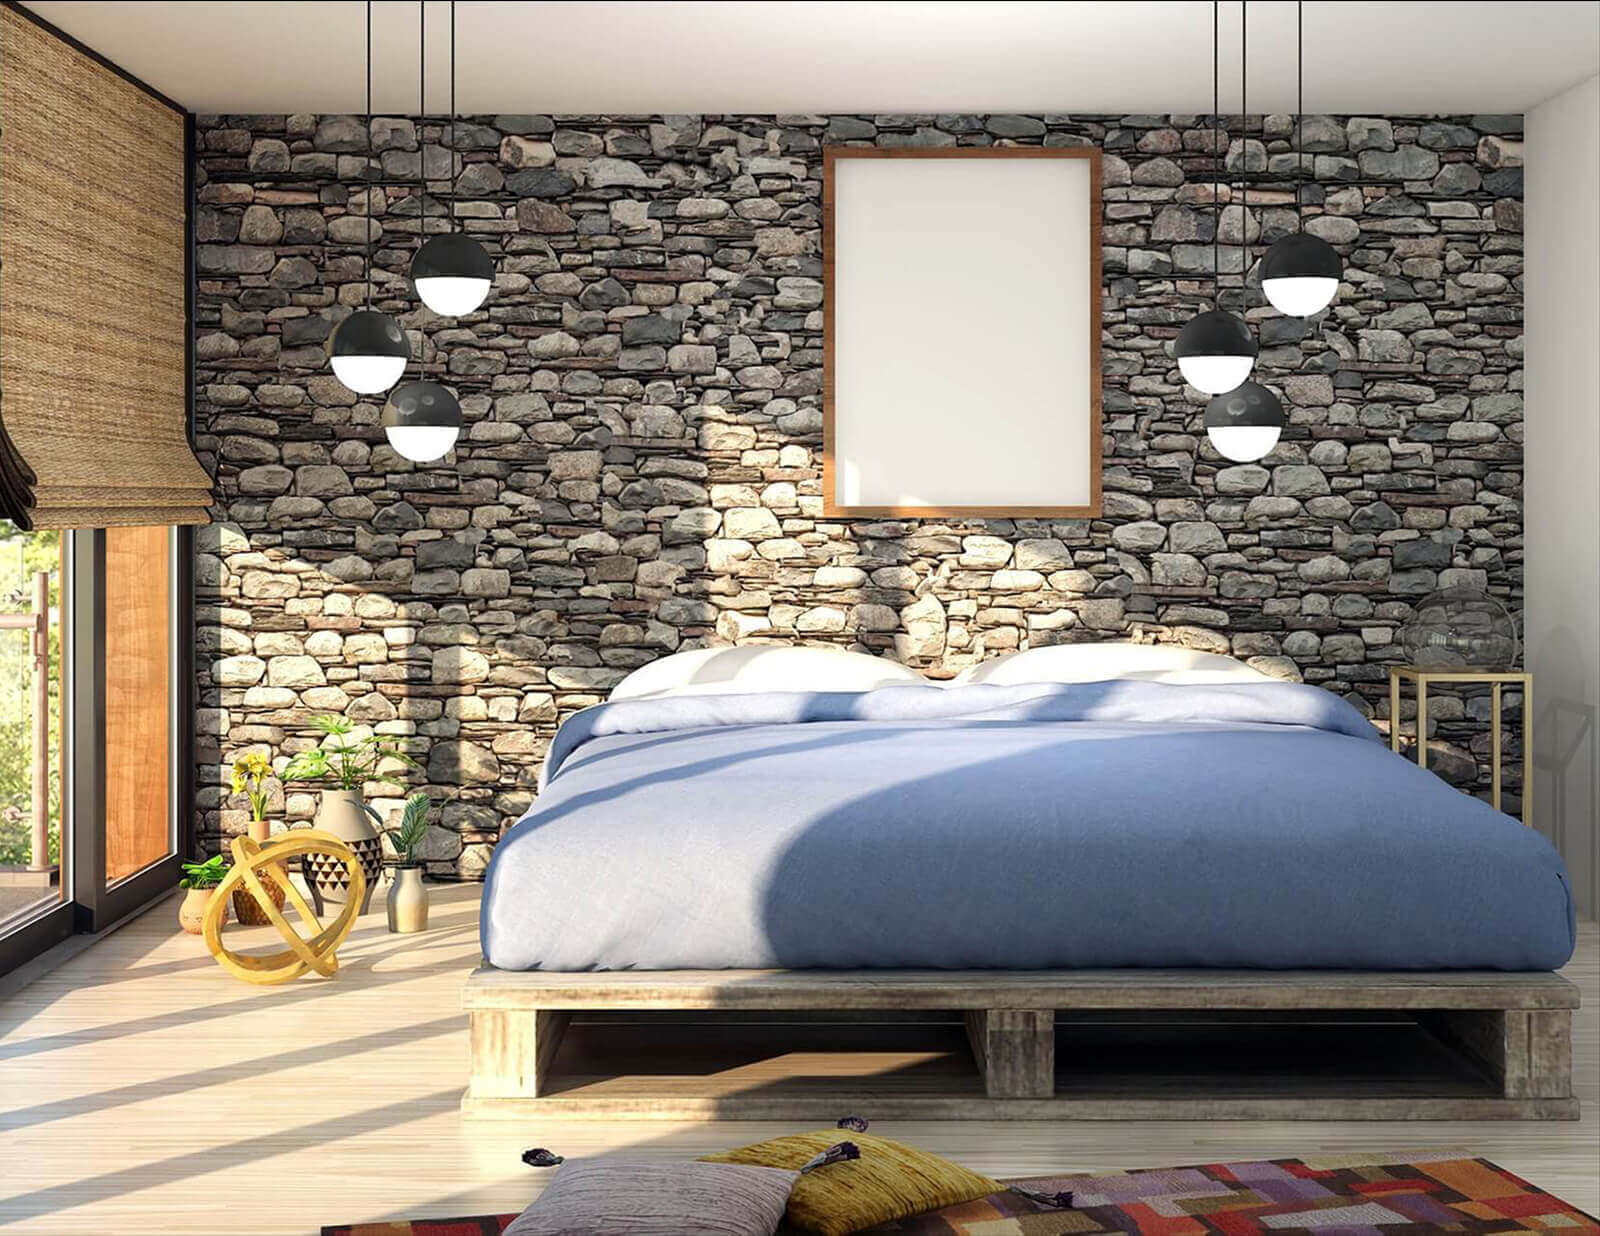 Wink & Nod has on sale India's best